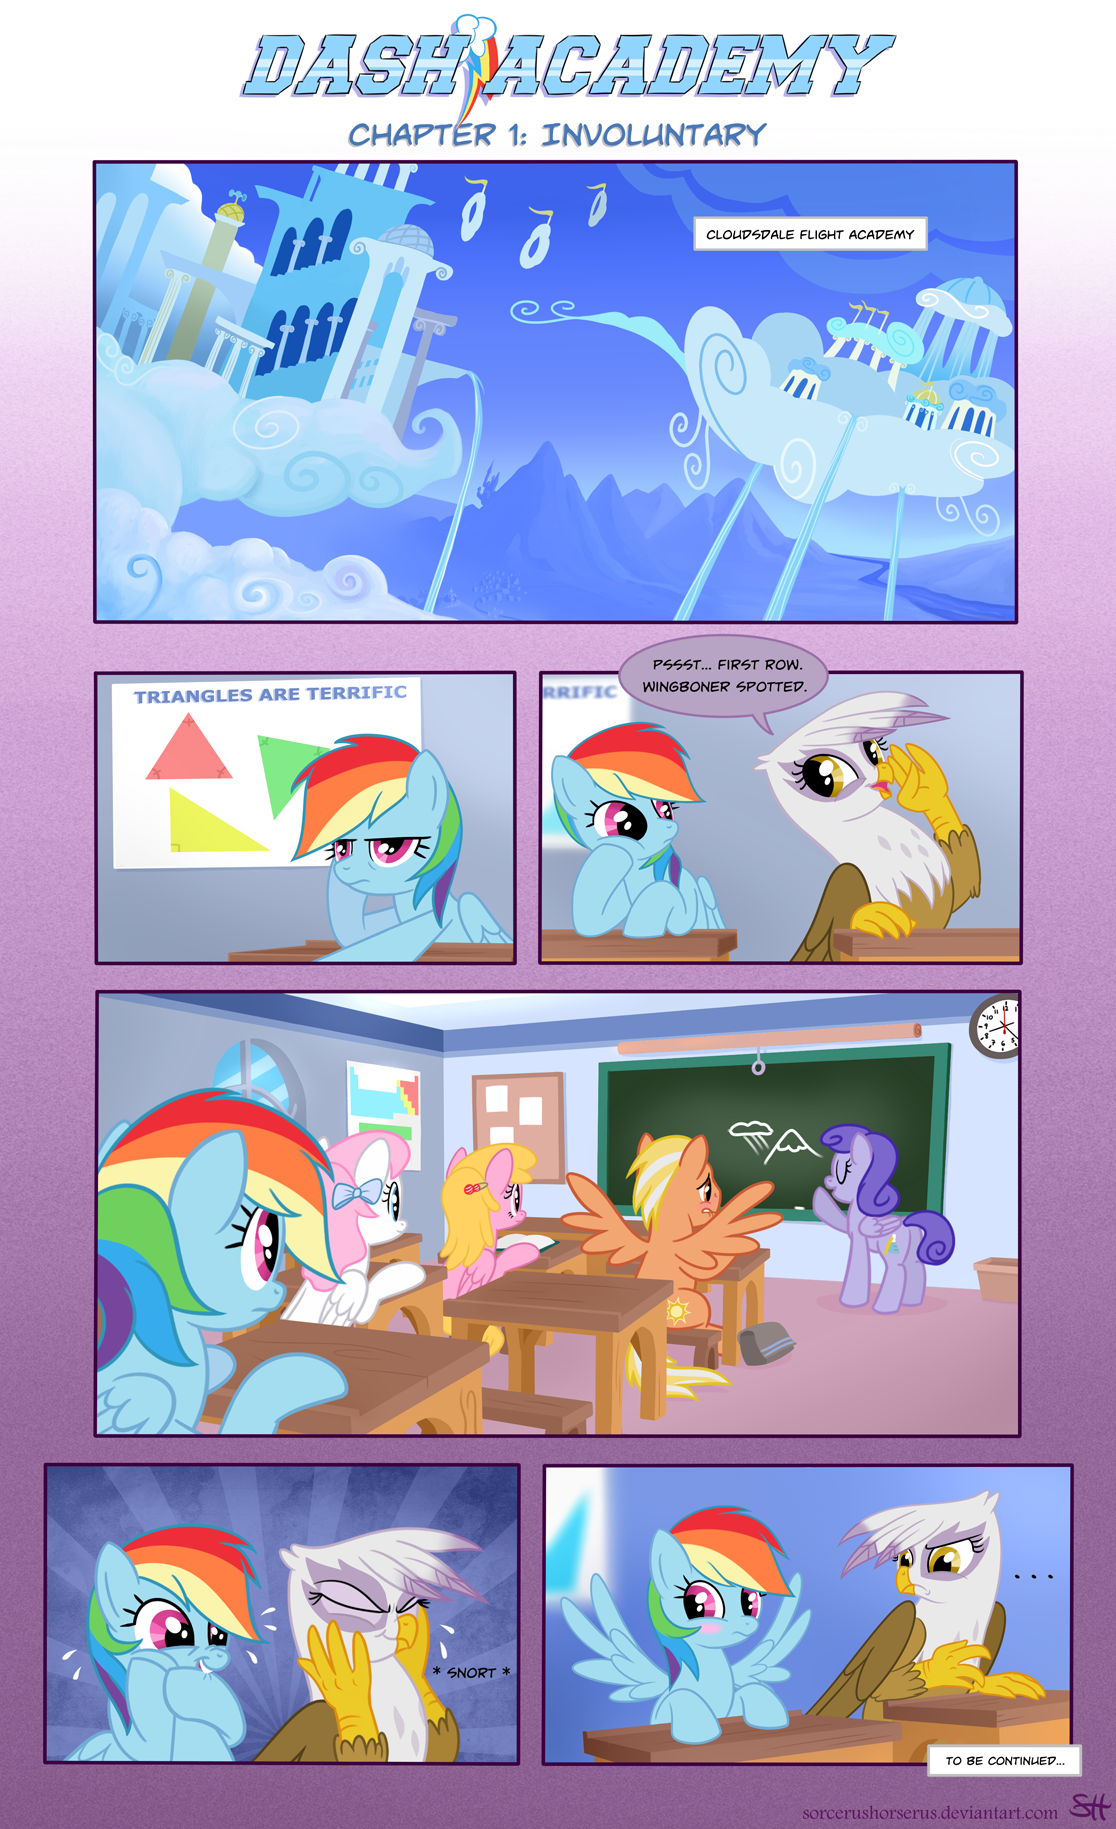 Dash Academy Chapter 1 - Involuntary by SorcerusHorserus